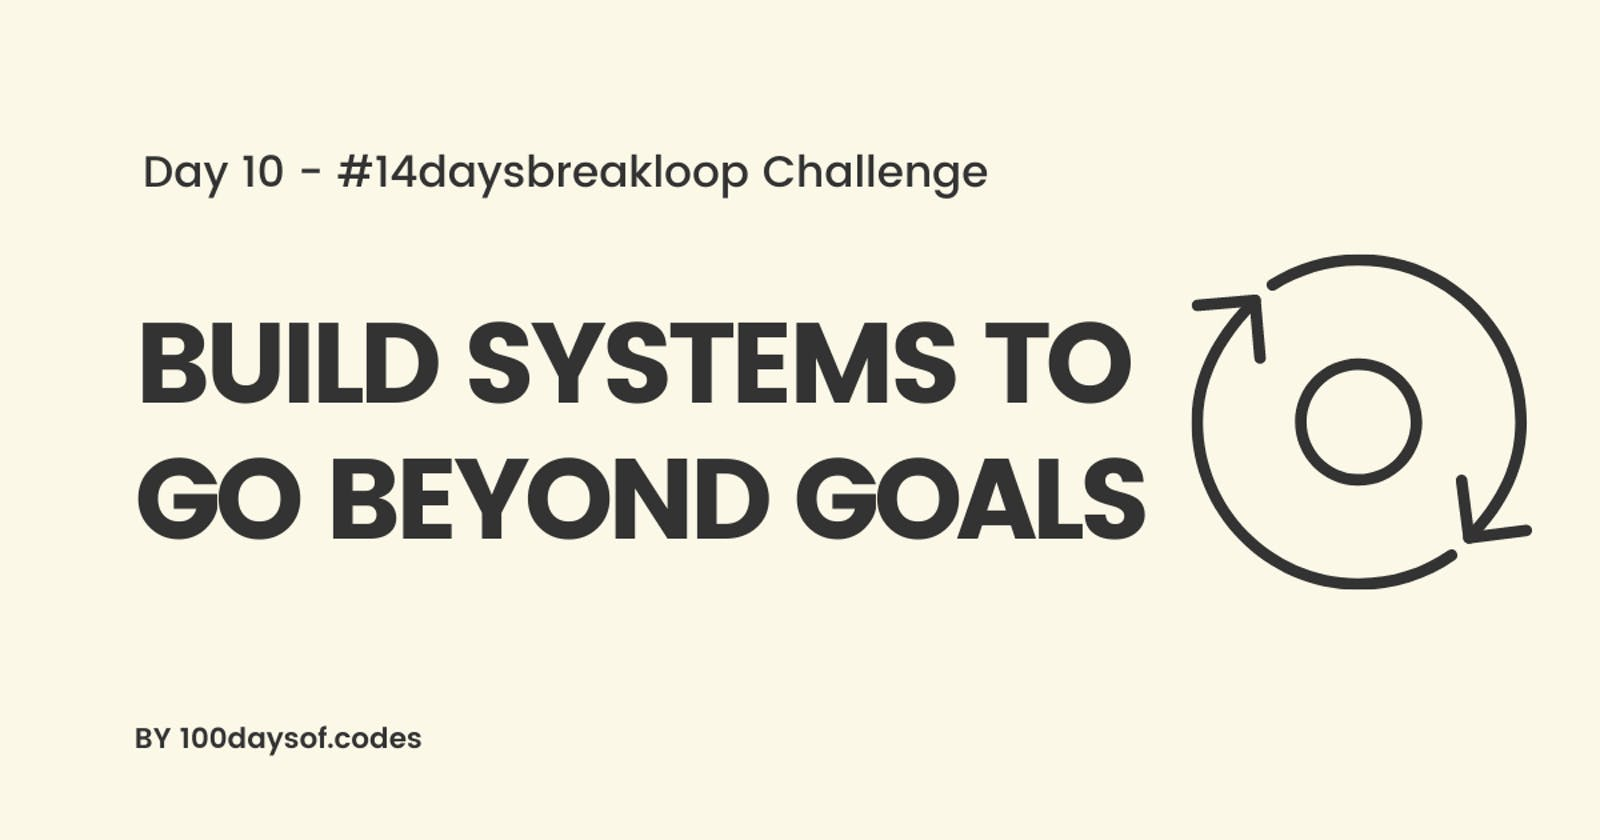 Build systems to go beyond goals